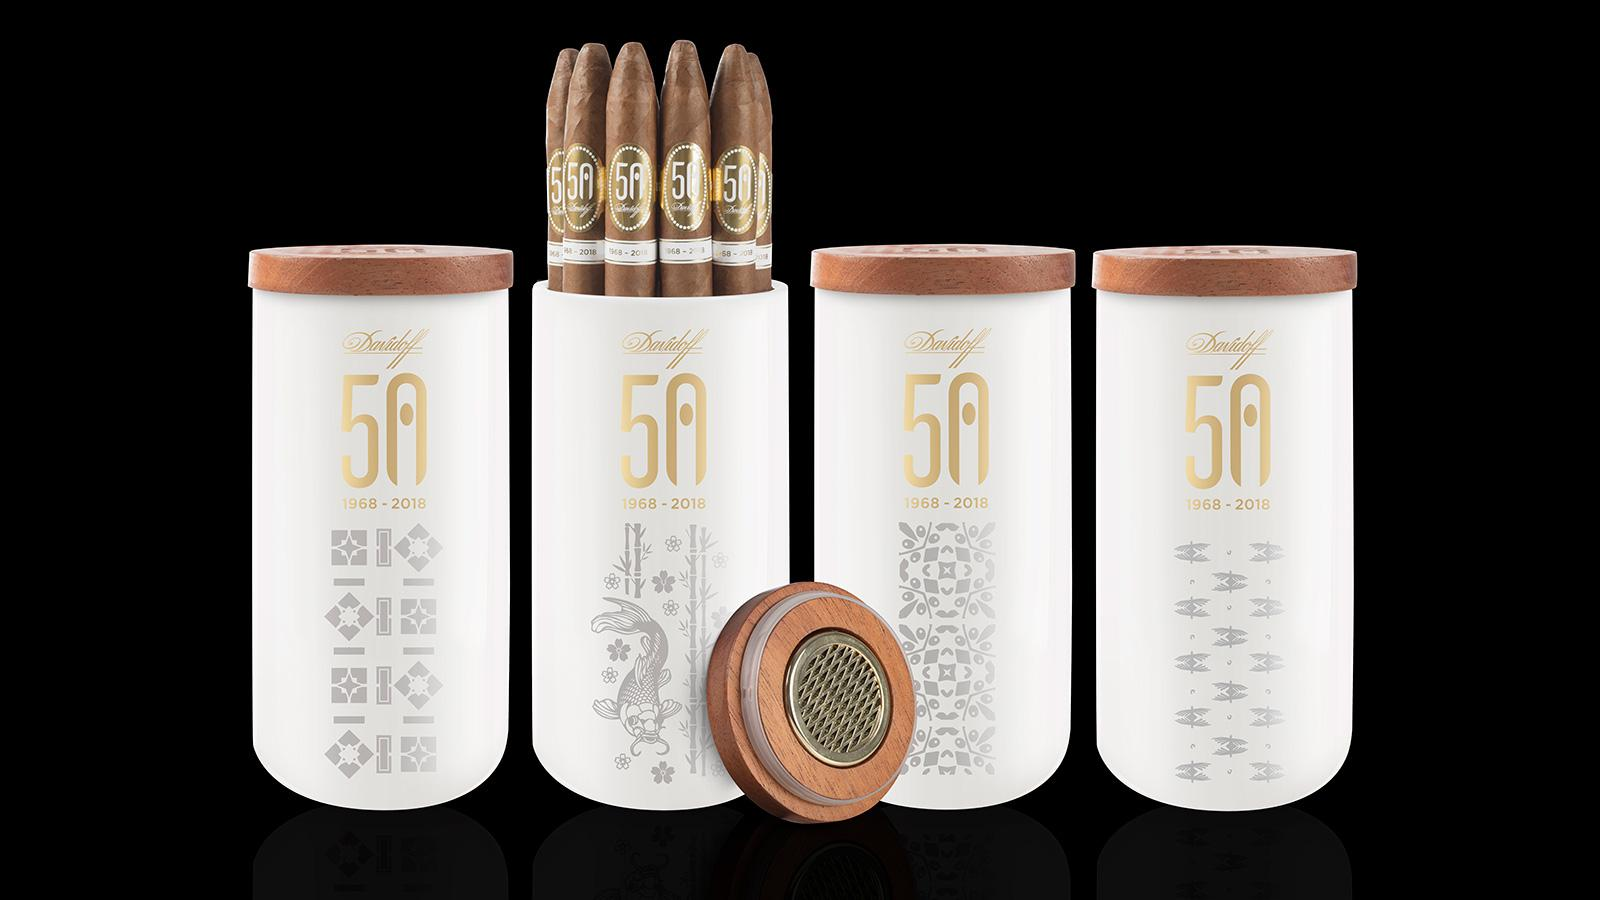 Davidoff Diademas Finas Returns for Limited Run